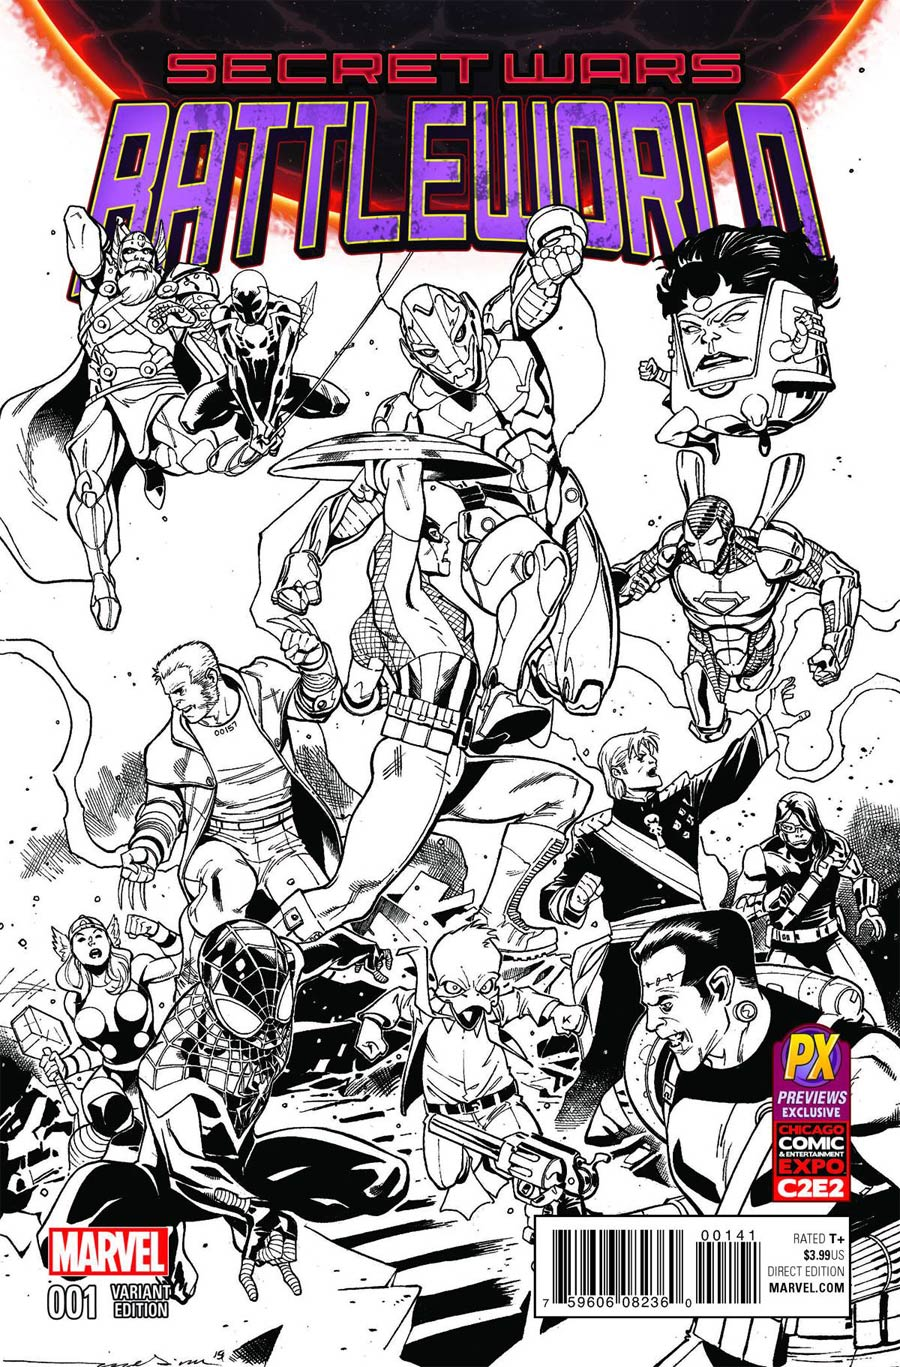 Secret Wars Battleworld #1 Cover E Paco Medina C2E2 Previews Exclusive Inked Variant Cover